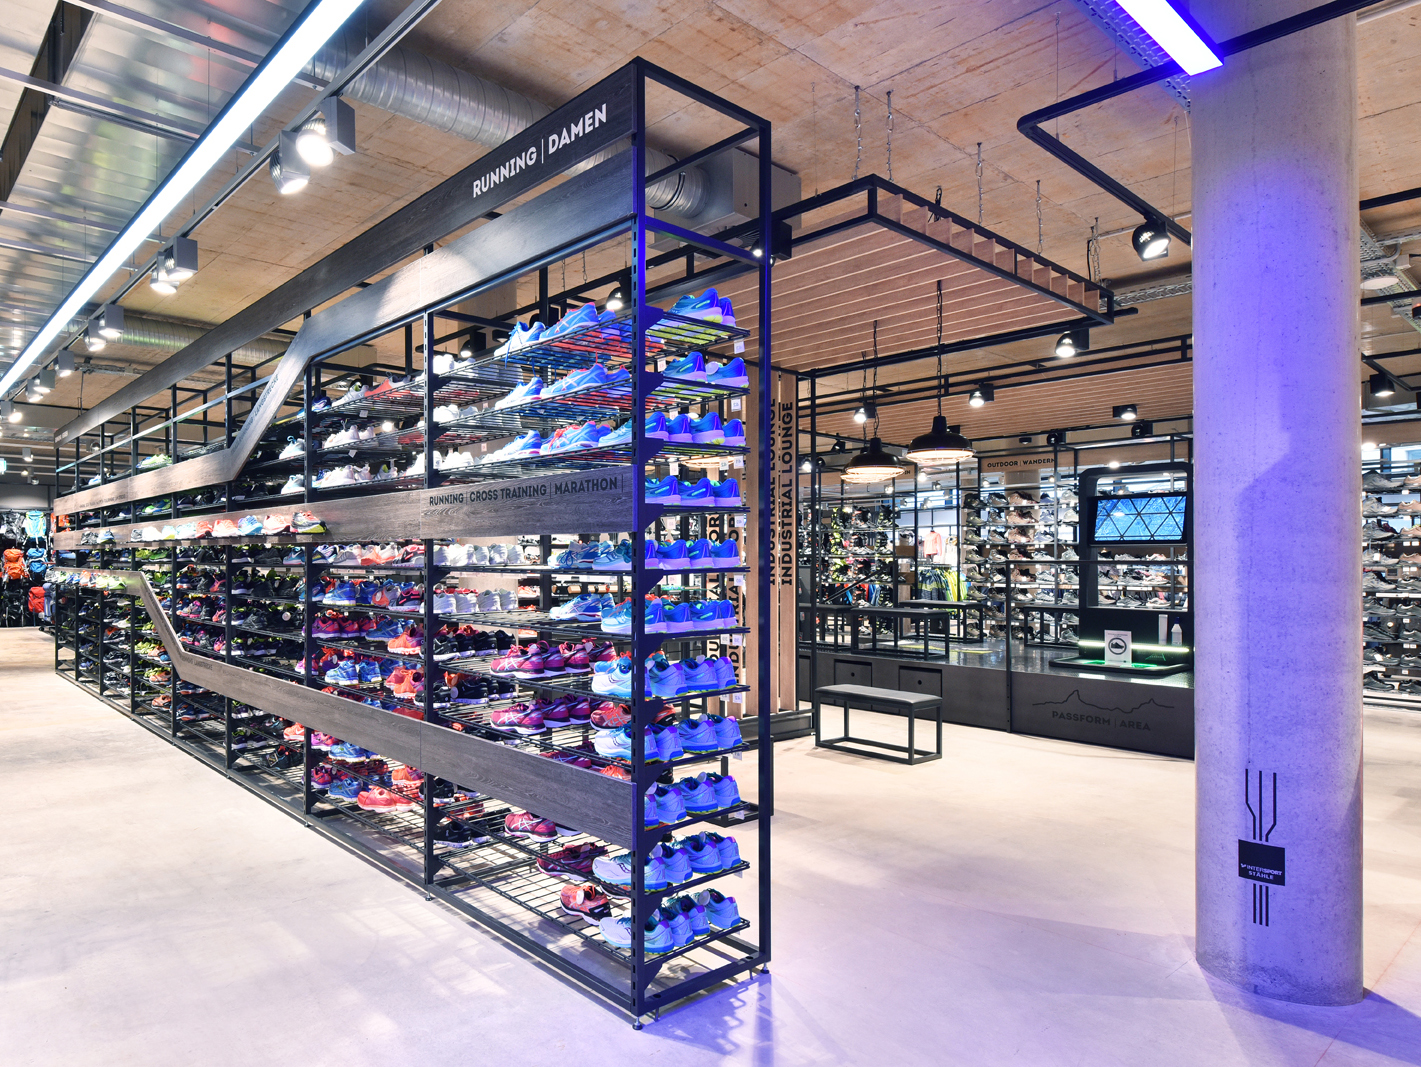 Raum-im-Raum-Intersport Stähle Schweizer Grenze Shopdesign Innenarchitektur Sport Retaildesign